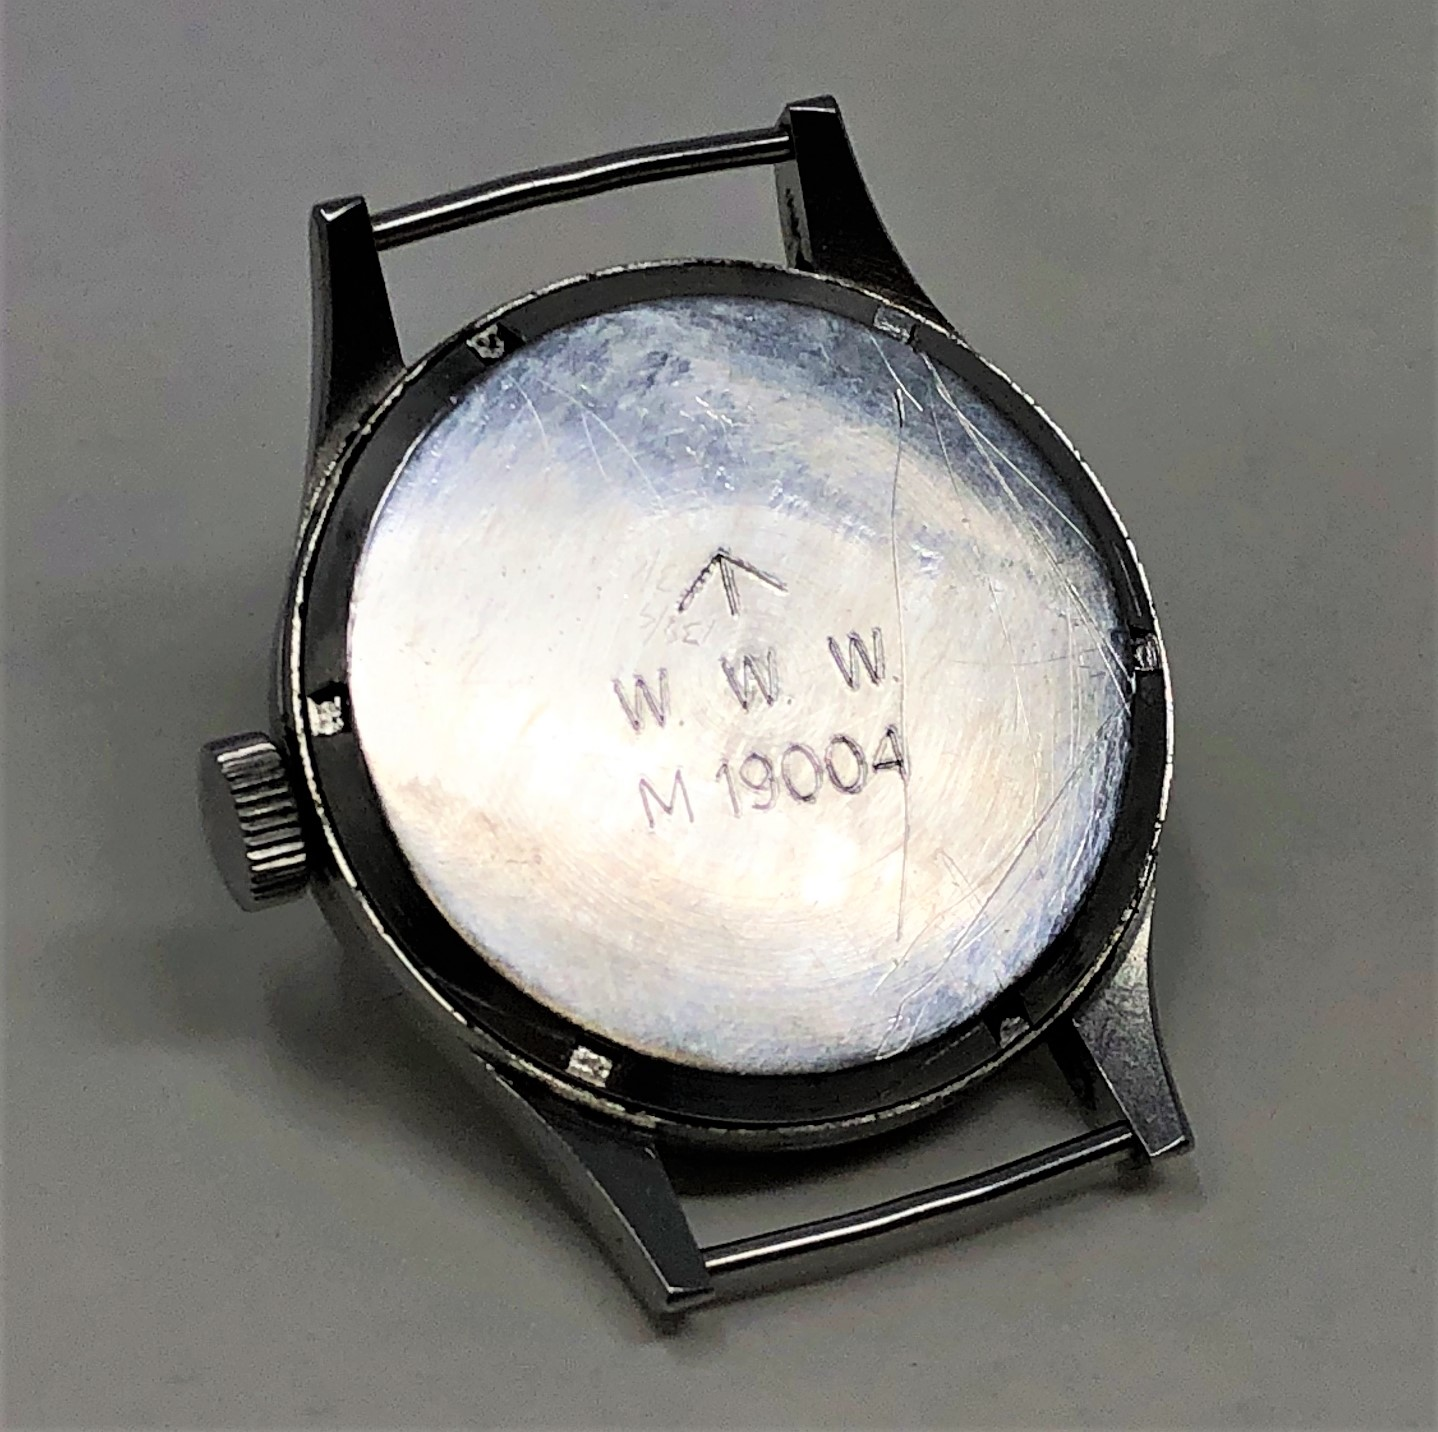 A very rare stainless steel British Military Grana wristwatch, - Image 7 of 11